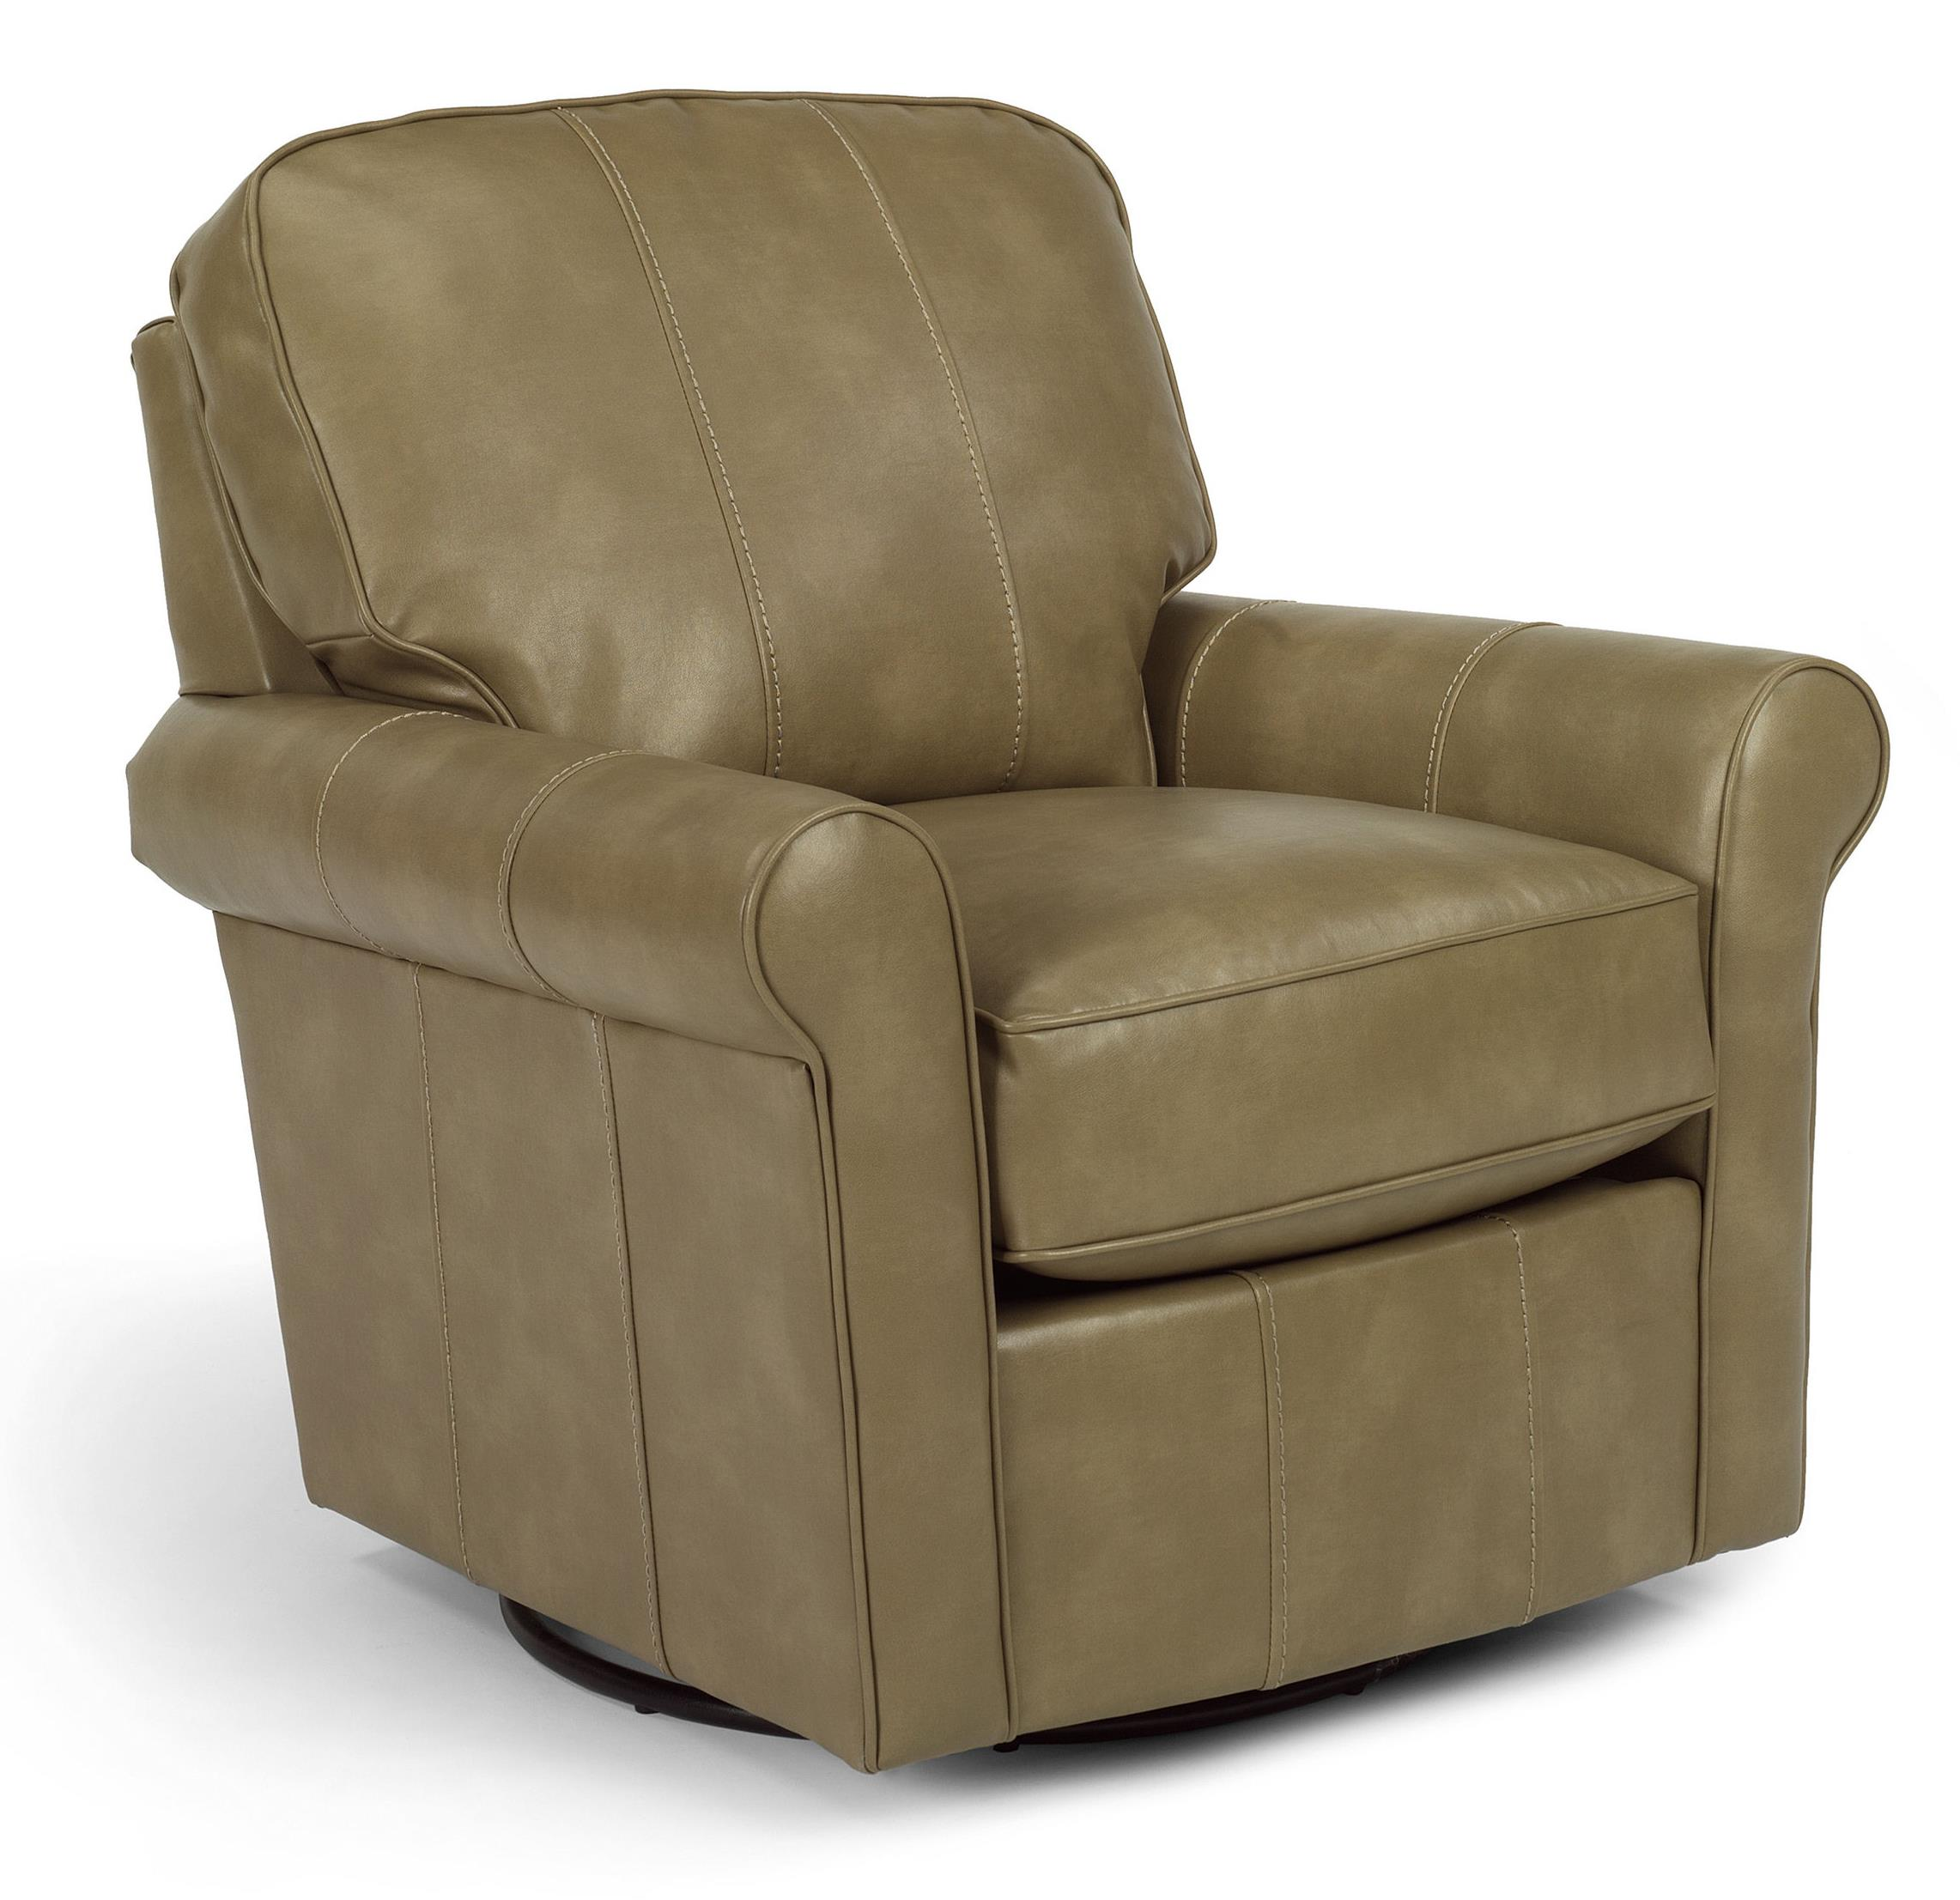 Flexsteel Swivel Glider Collection Transitional Parkway